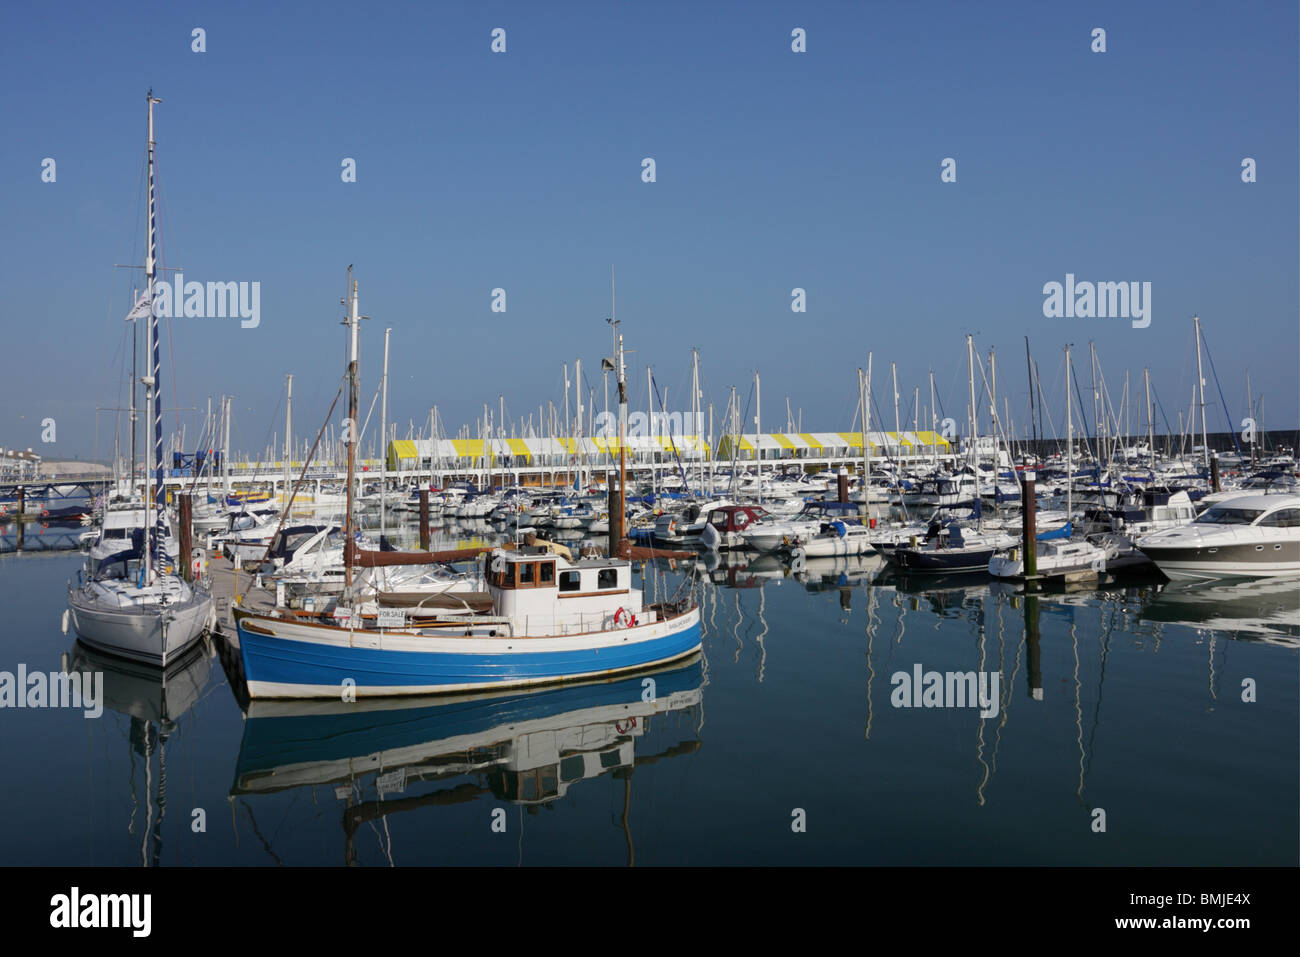 One of (17) images in the Brighton Marina set. various vertical and horizontal images to ponder over, please enjoy. - Stock Image